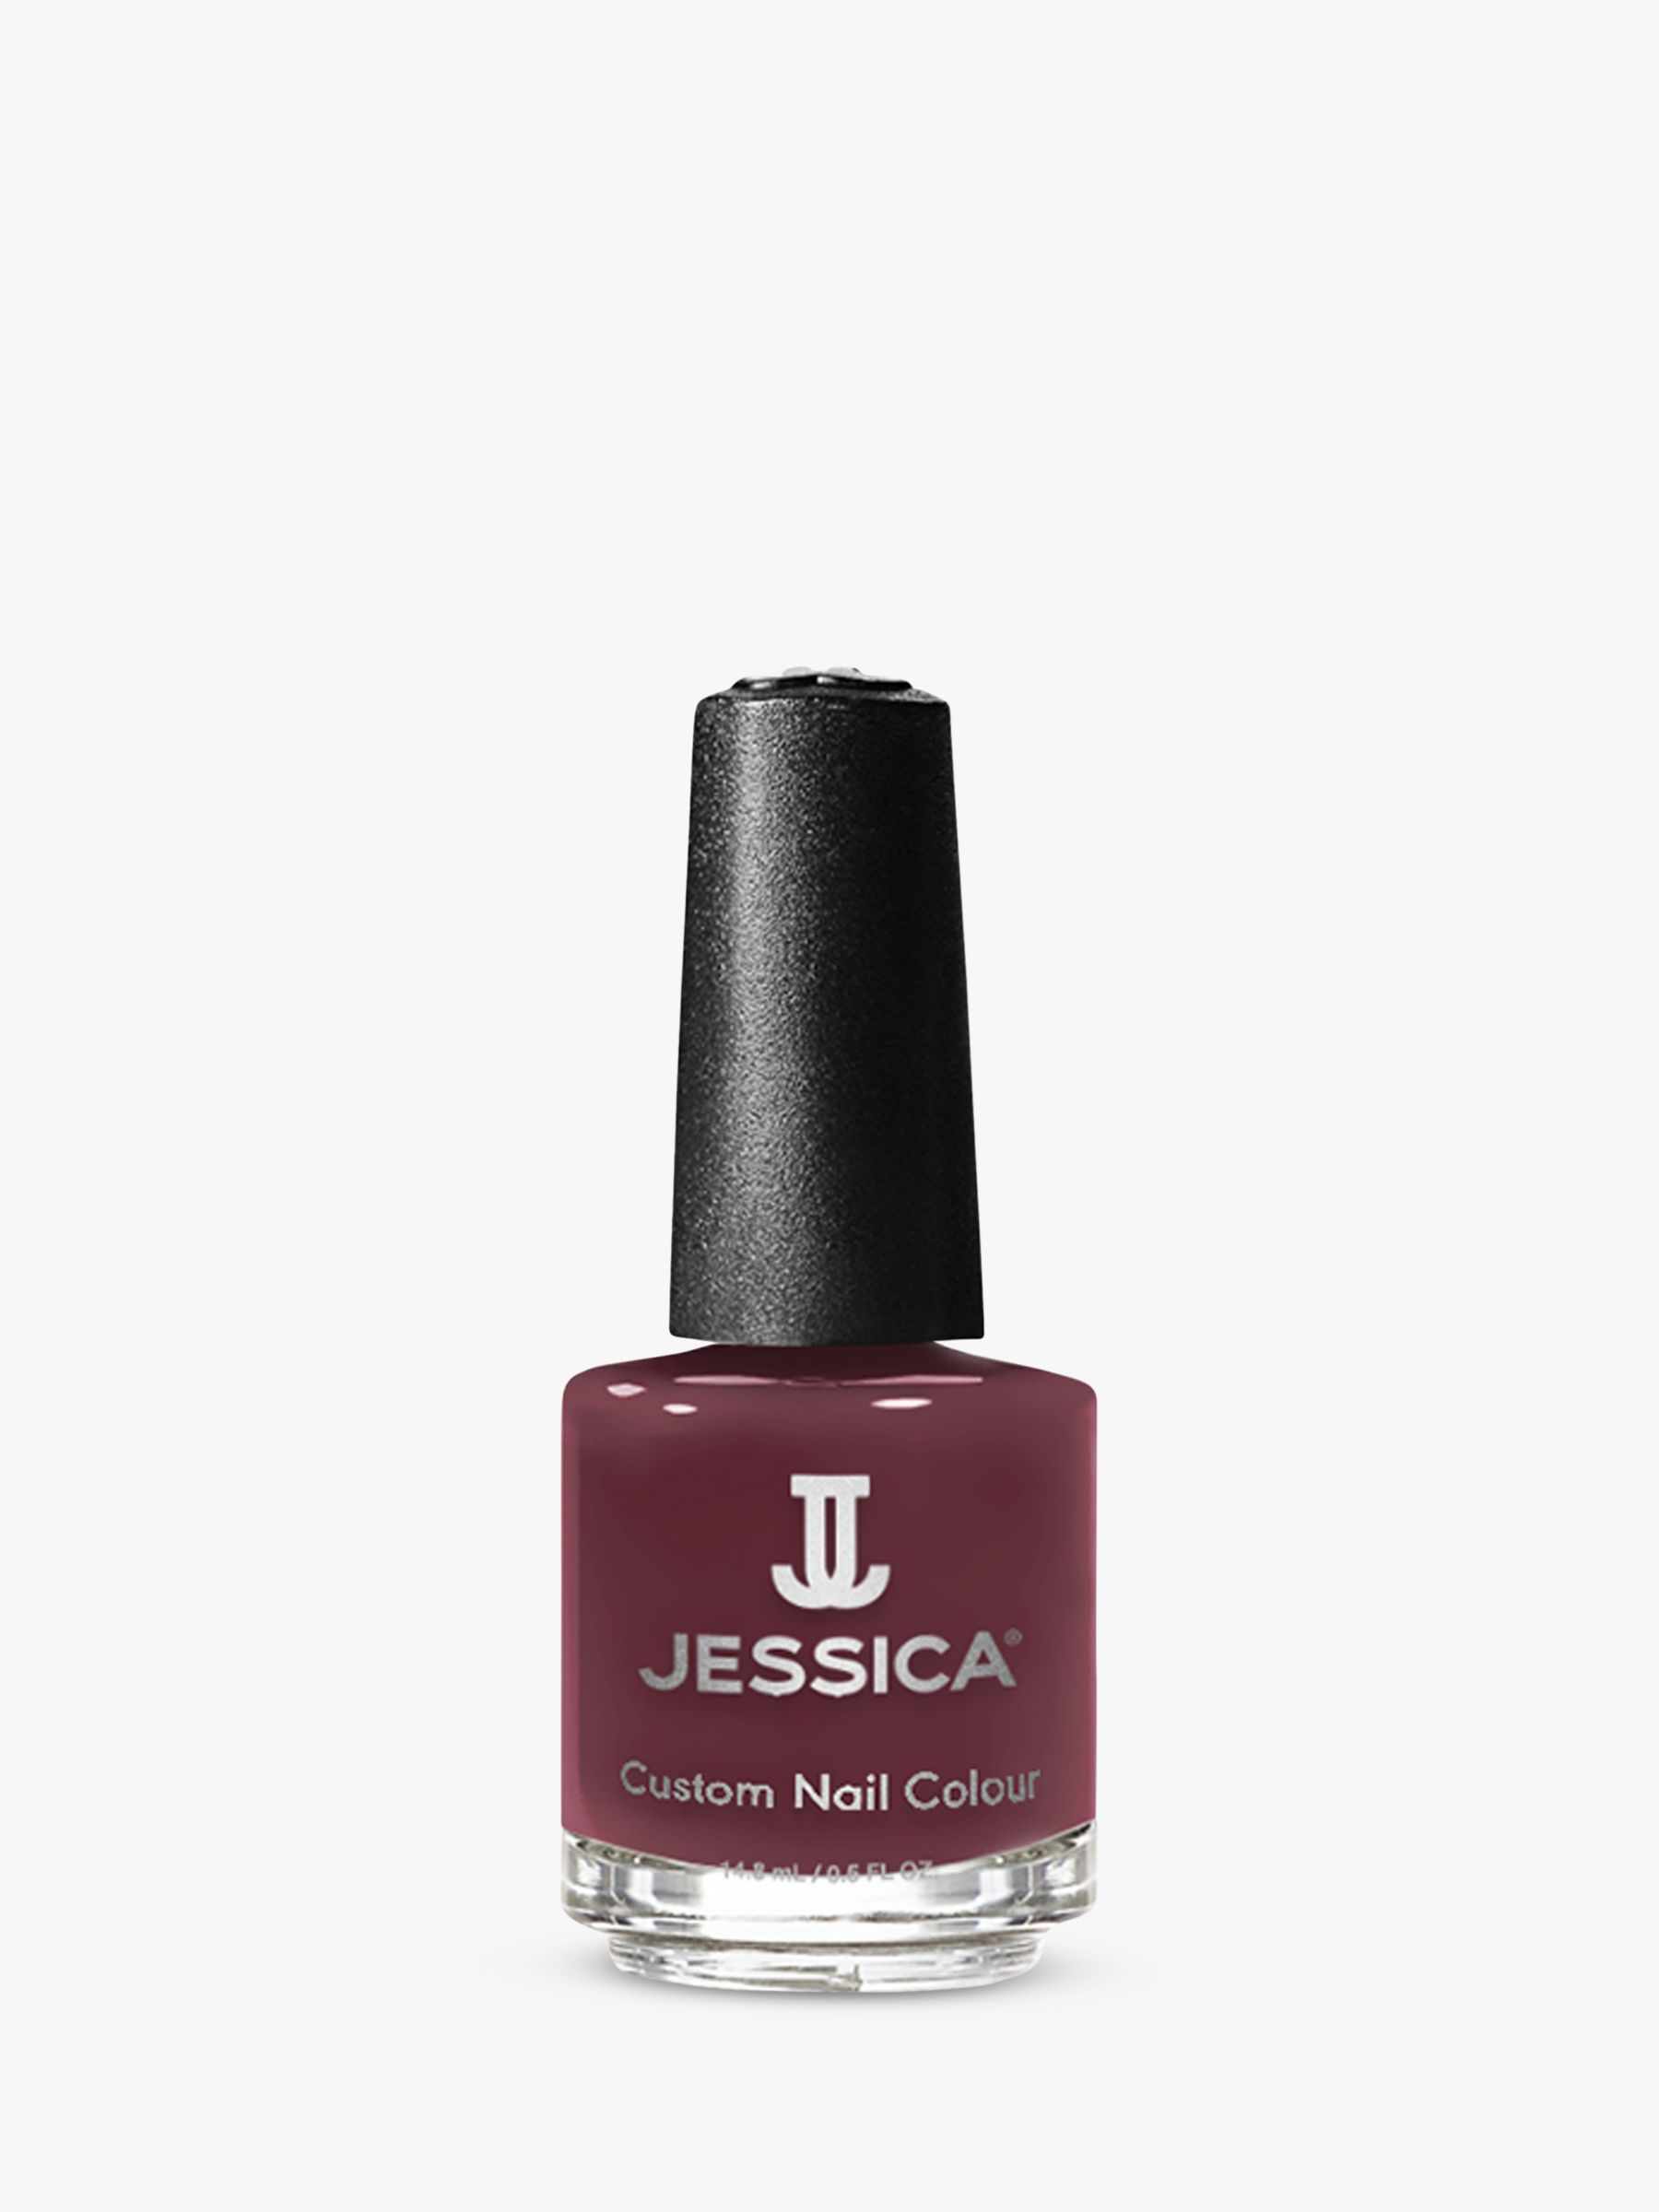 Jessica Jessica Custom Nail Colour - Browns and Bronzes